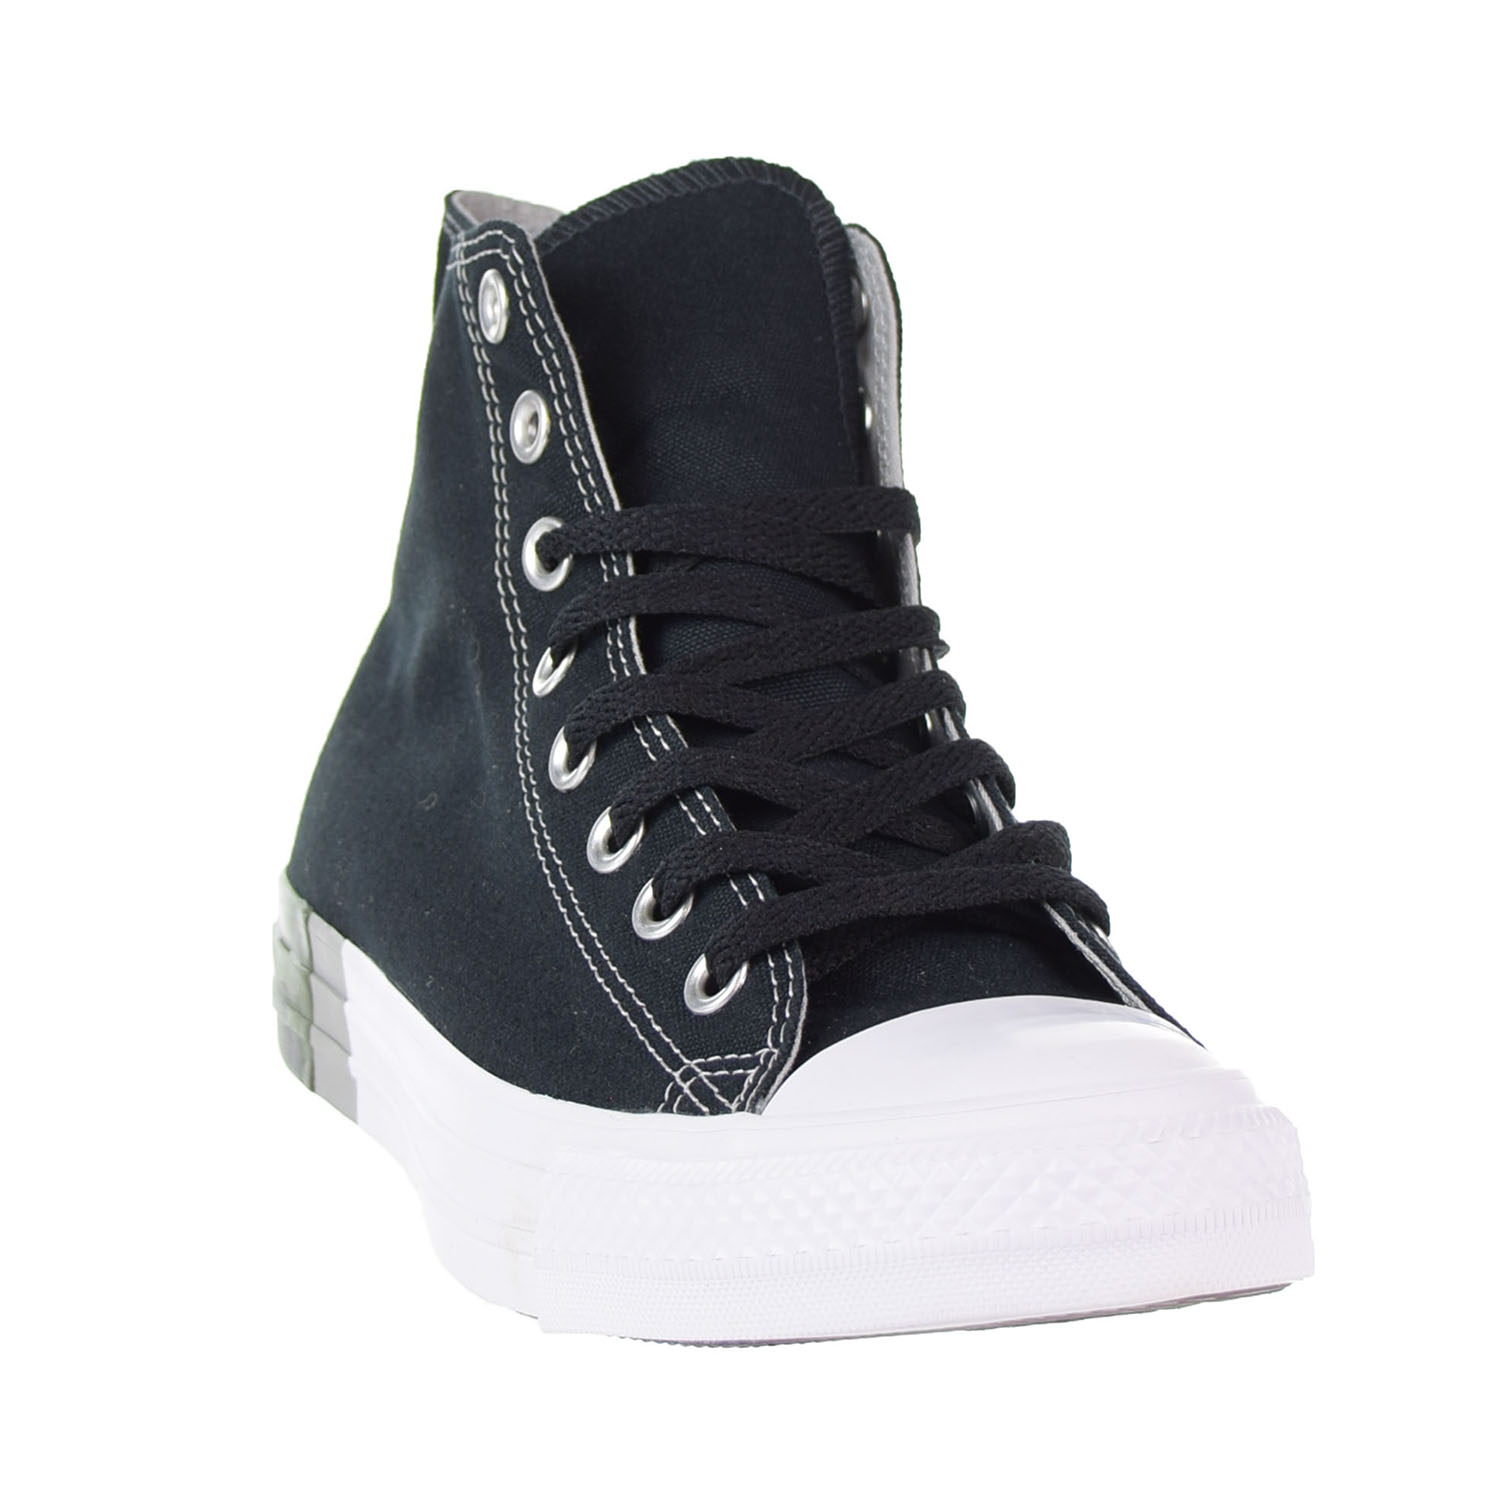 854a2058becb Converse Chuck Taylor All Star HI Unisex Shoes Black Dolphin White 159549f